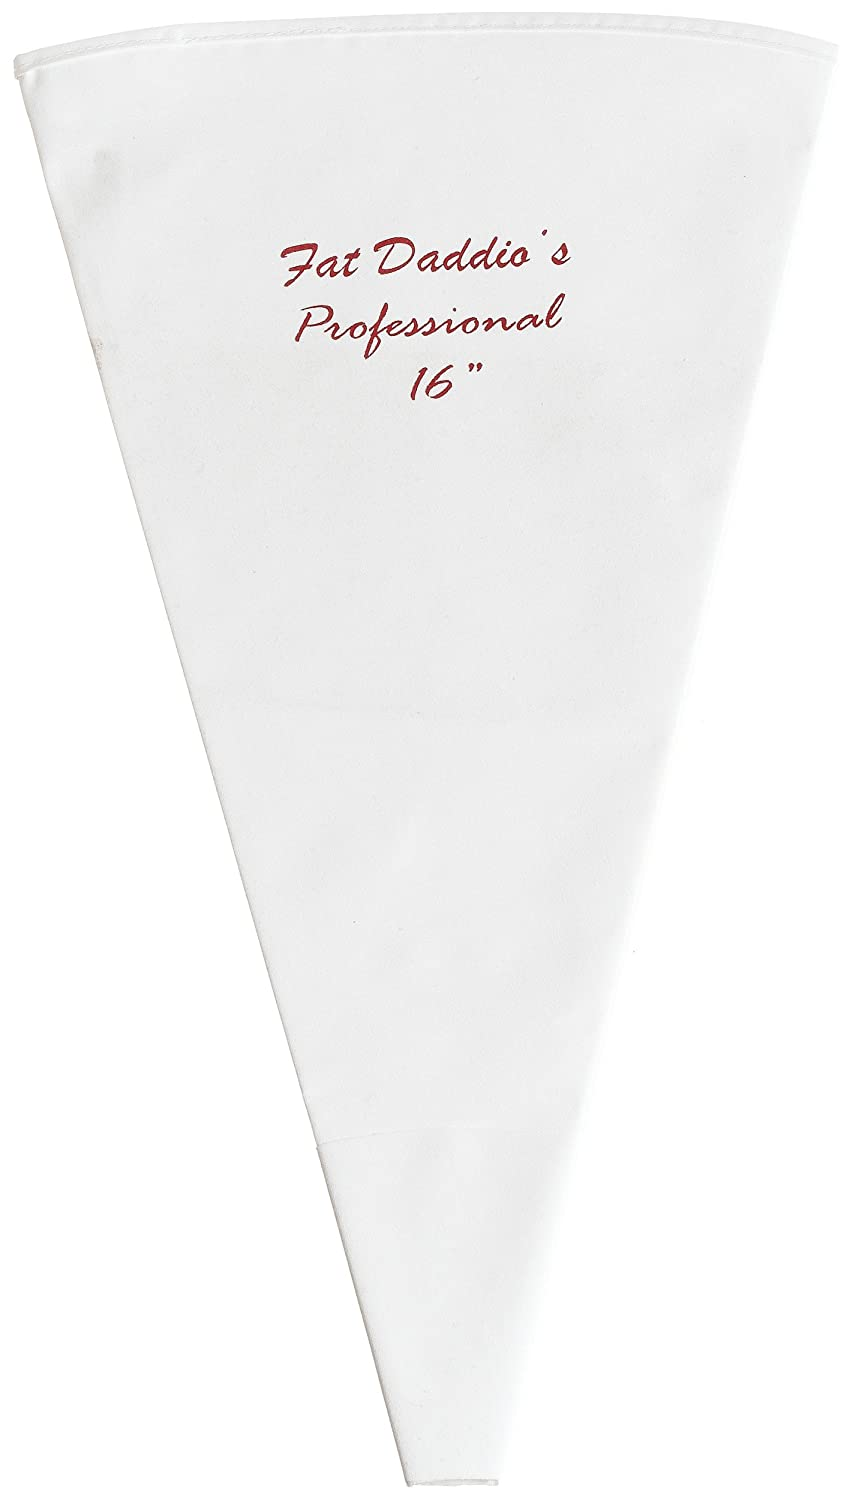 Fat 2021new shipping free shipping Daddio's Pastry Bag 16 supreme Cloth Inch